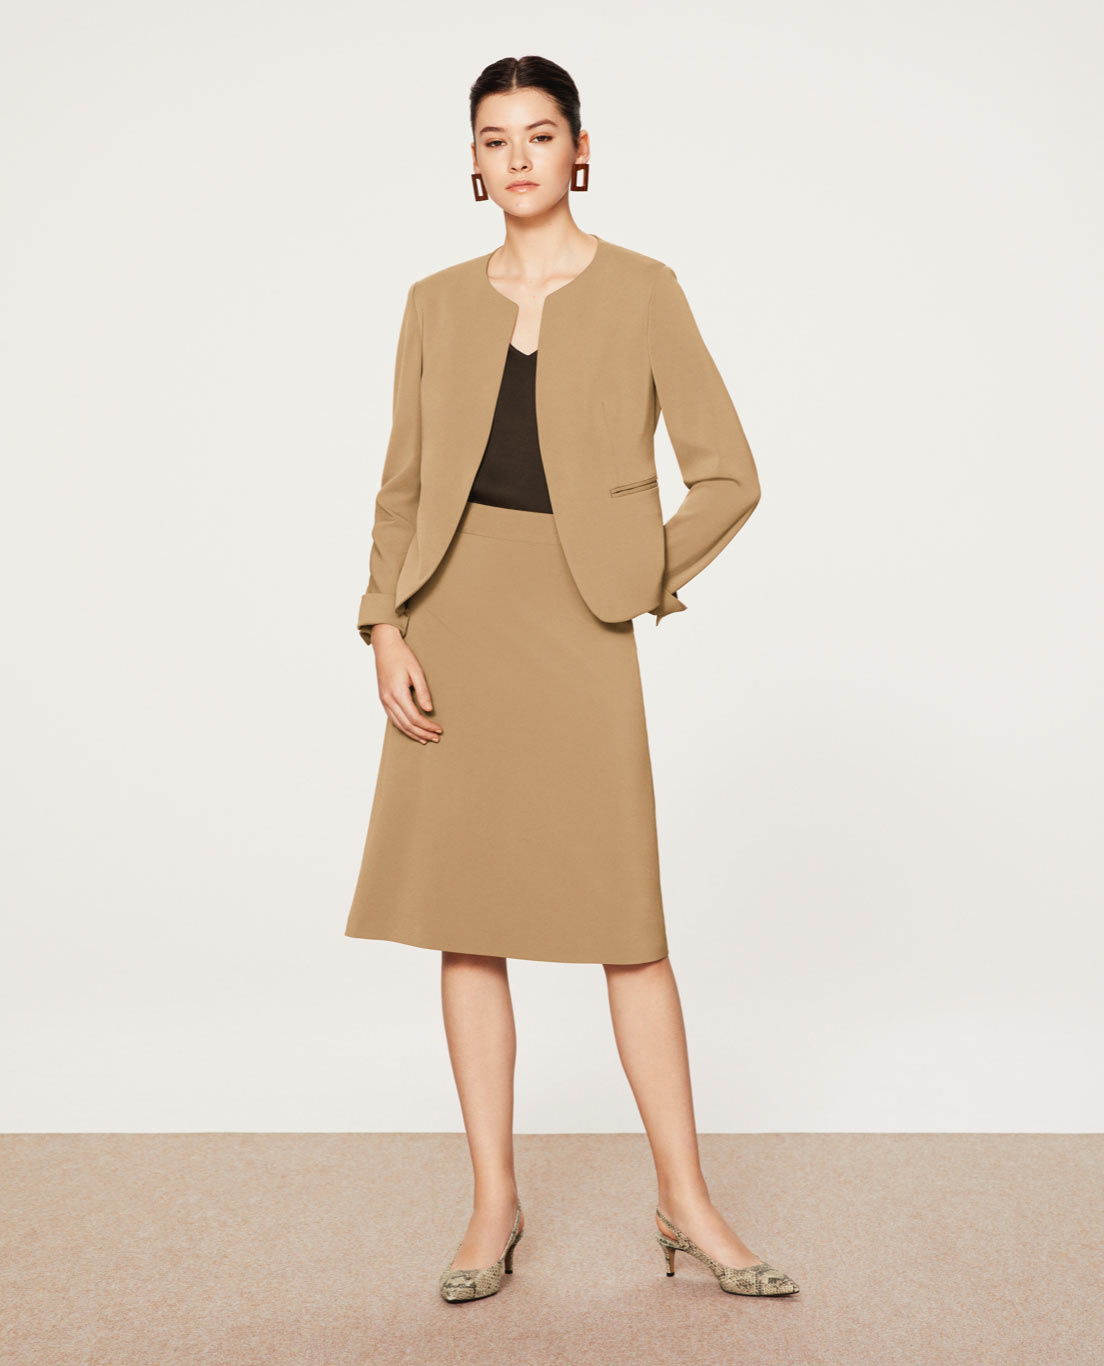 COMFORT NO COLLAR JACKET・ALINE SKIRT: 5445 / WASHABLE / STRETCH / SILKY TOUCH / CAMEL